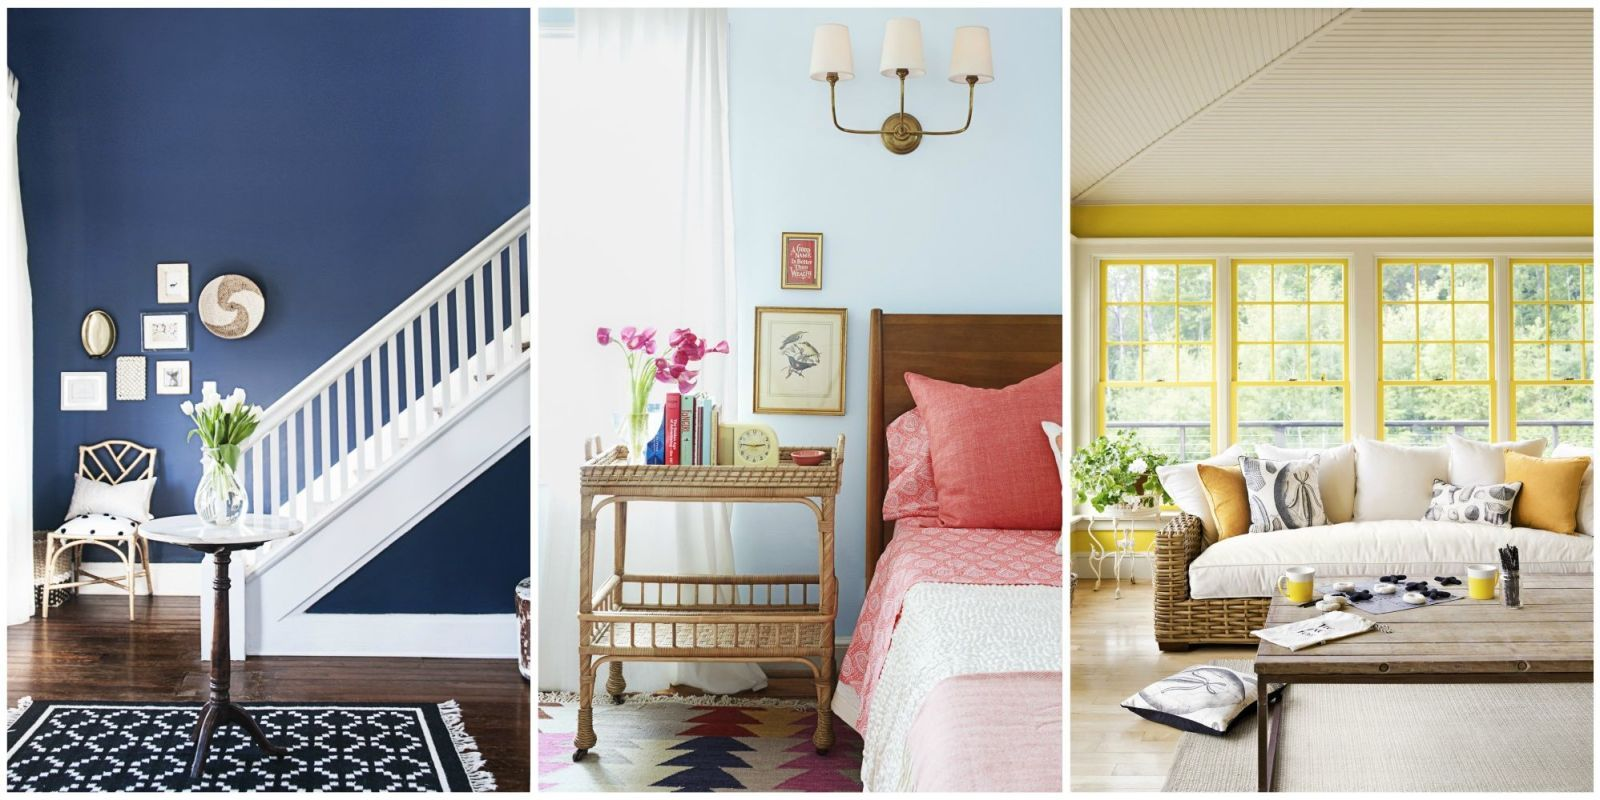 Finding The Right Paint Color Among Thousands Is No Simple Feat! To Make It  Easier, Pull From Things You Already Love: Take A Photo Of A Favorite Rug  Or ...